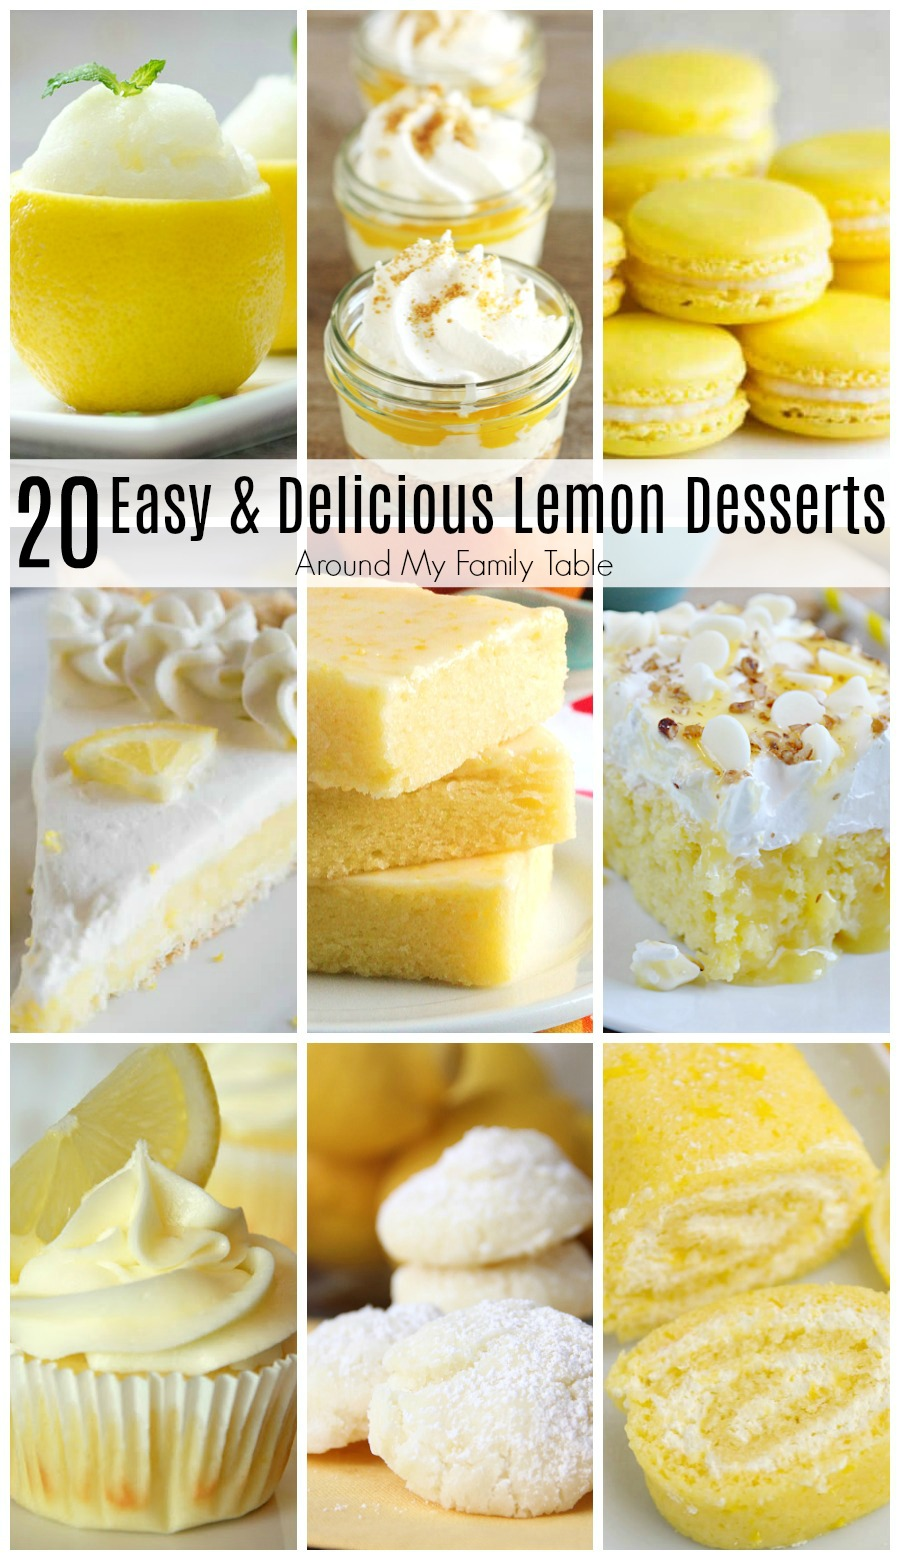 You know you want to try one of these 20 Easy and Delicious Lemon Desserts...theyare totally worth the pucker!